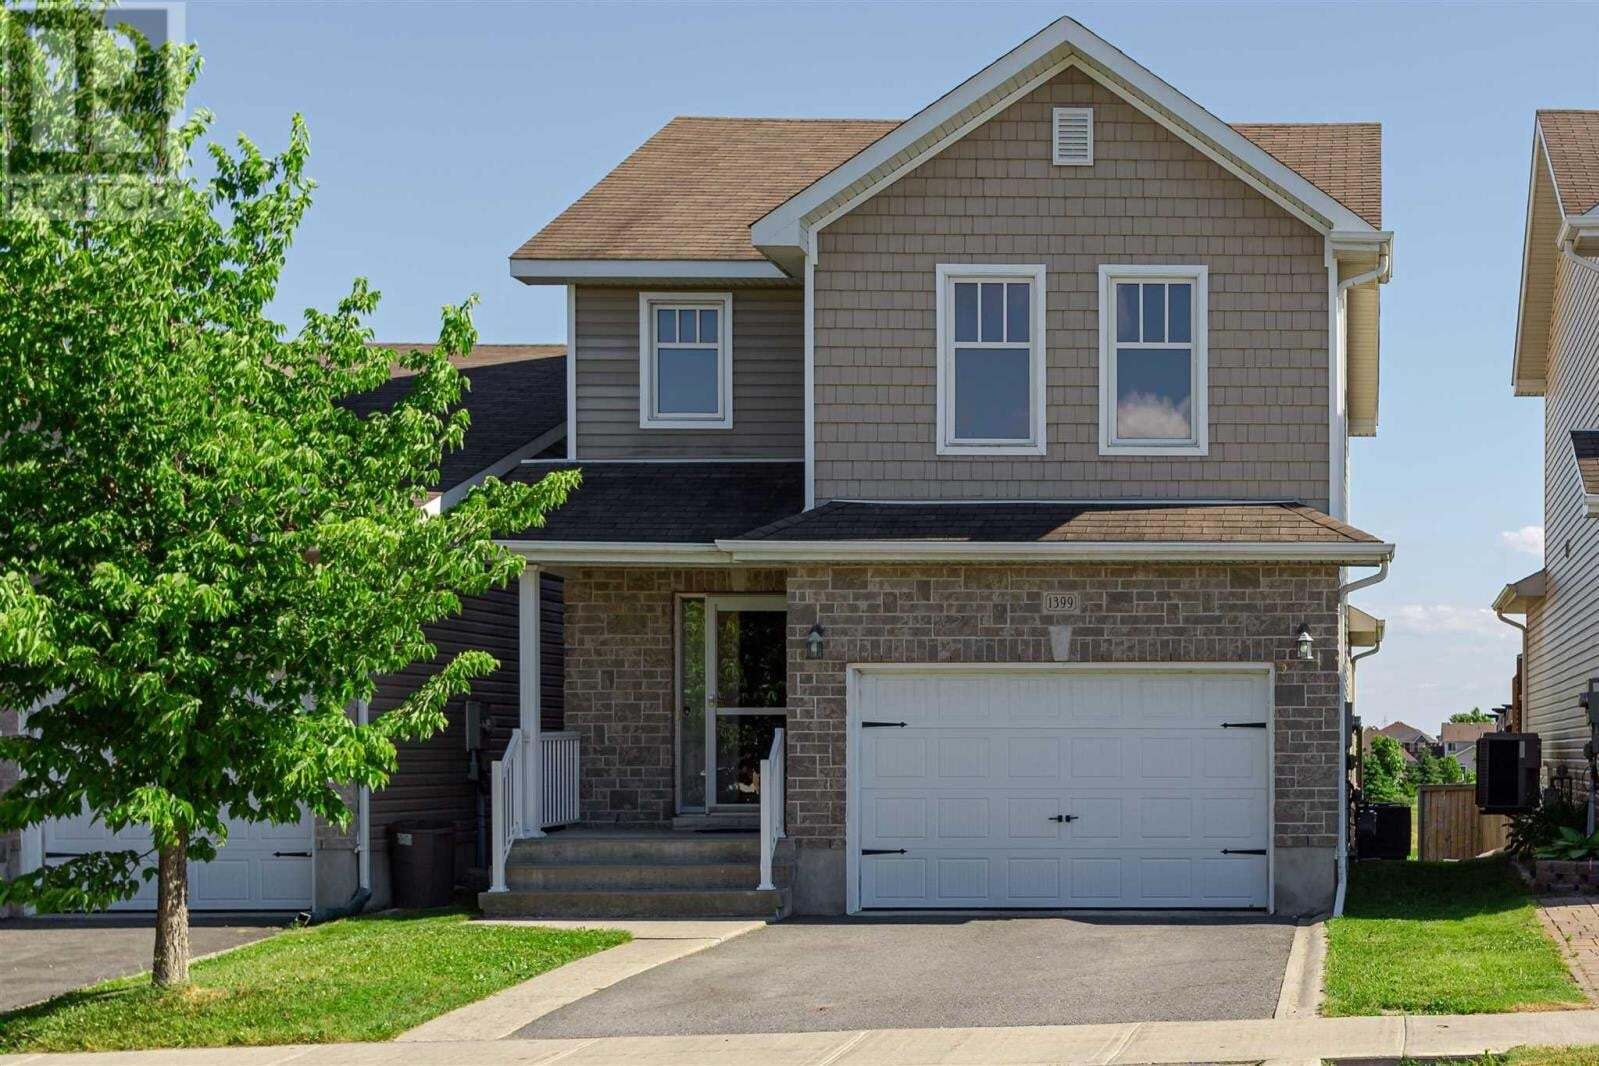 House for sale at 1399 Atkinson St Kingston Ontario - MLS: K20003473